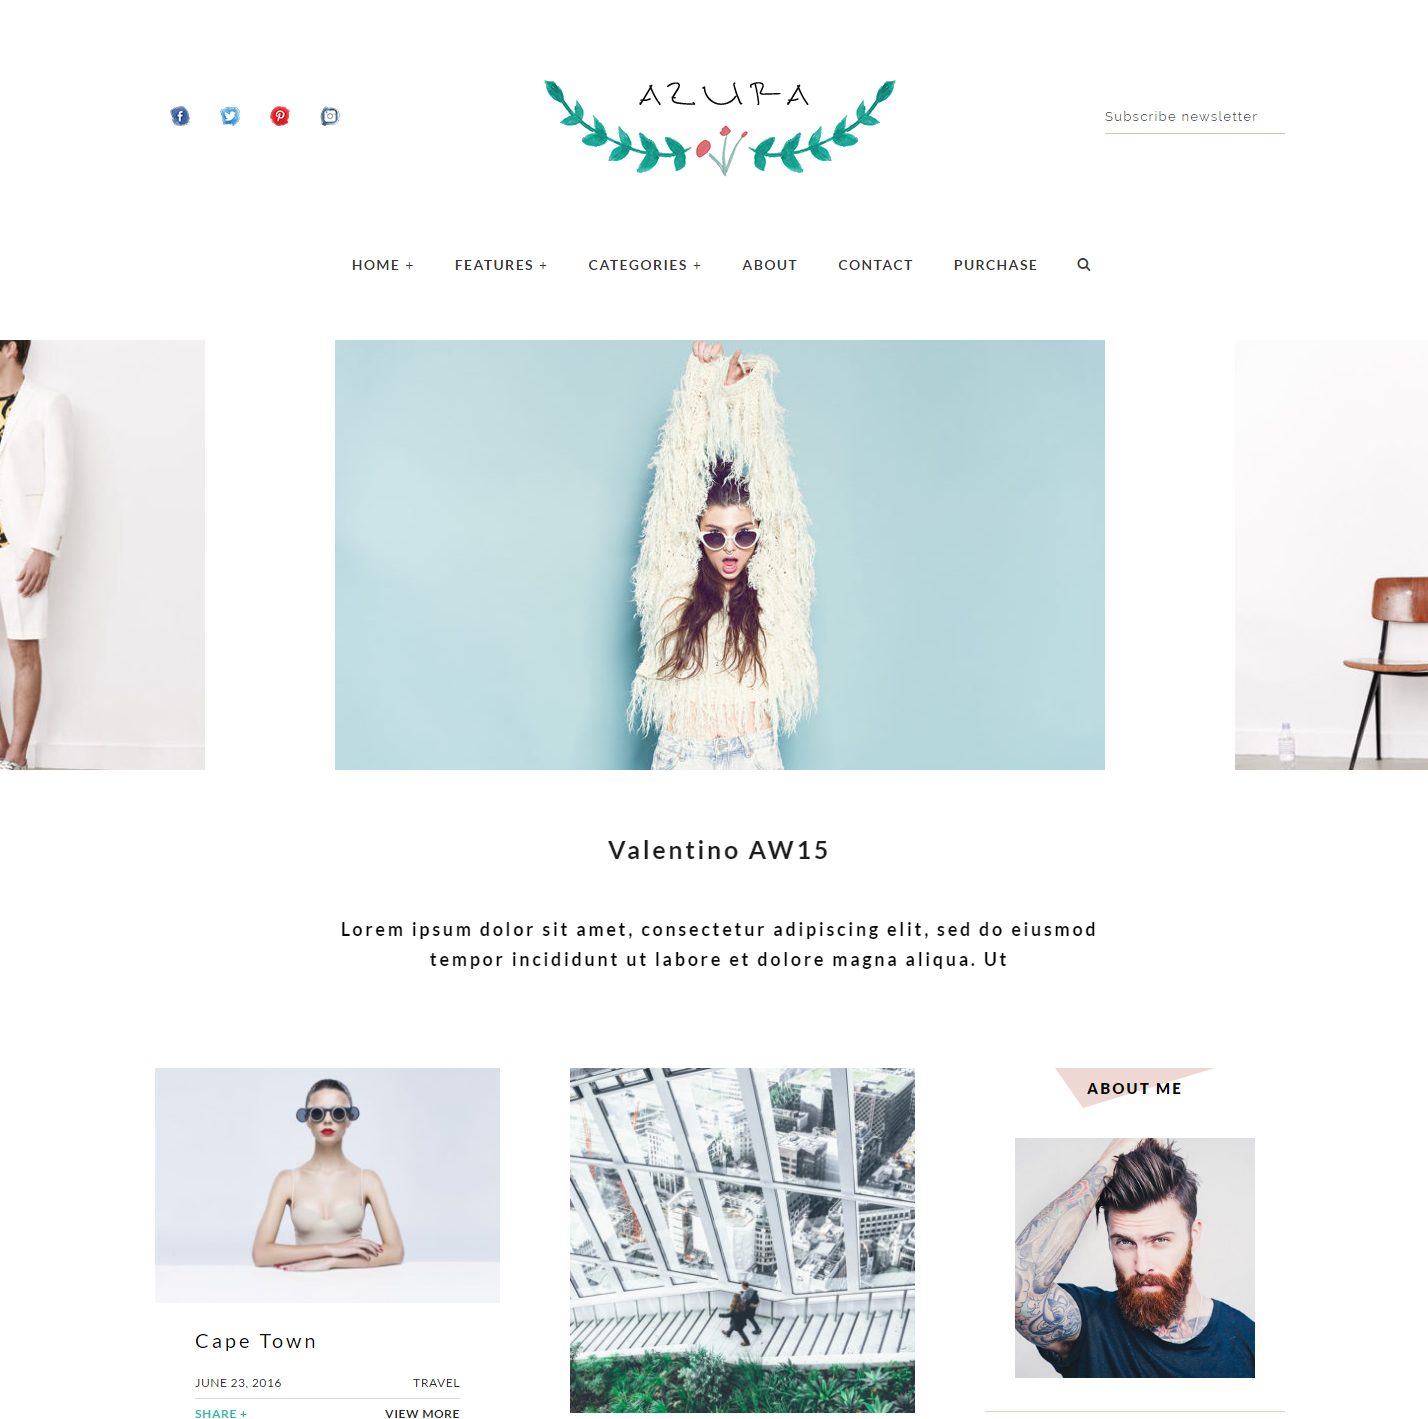 azura-premium-wordpress-theme